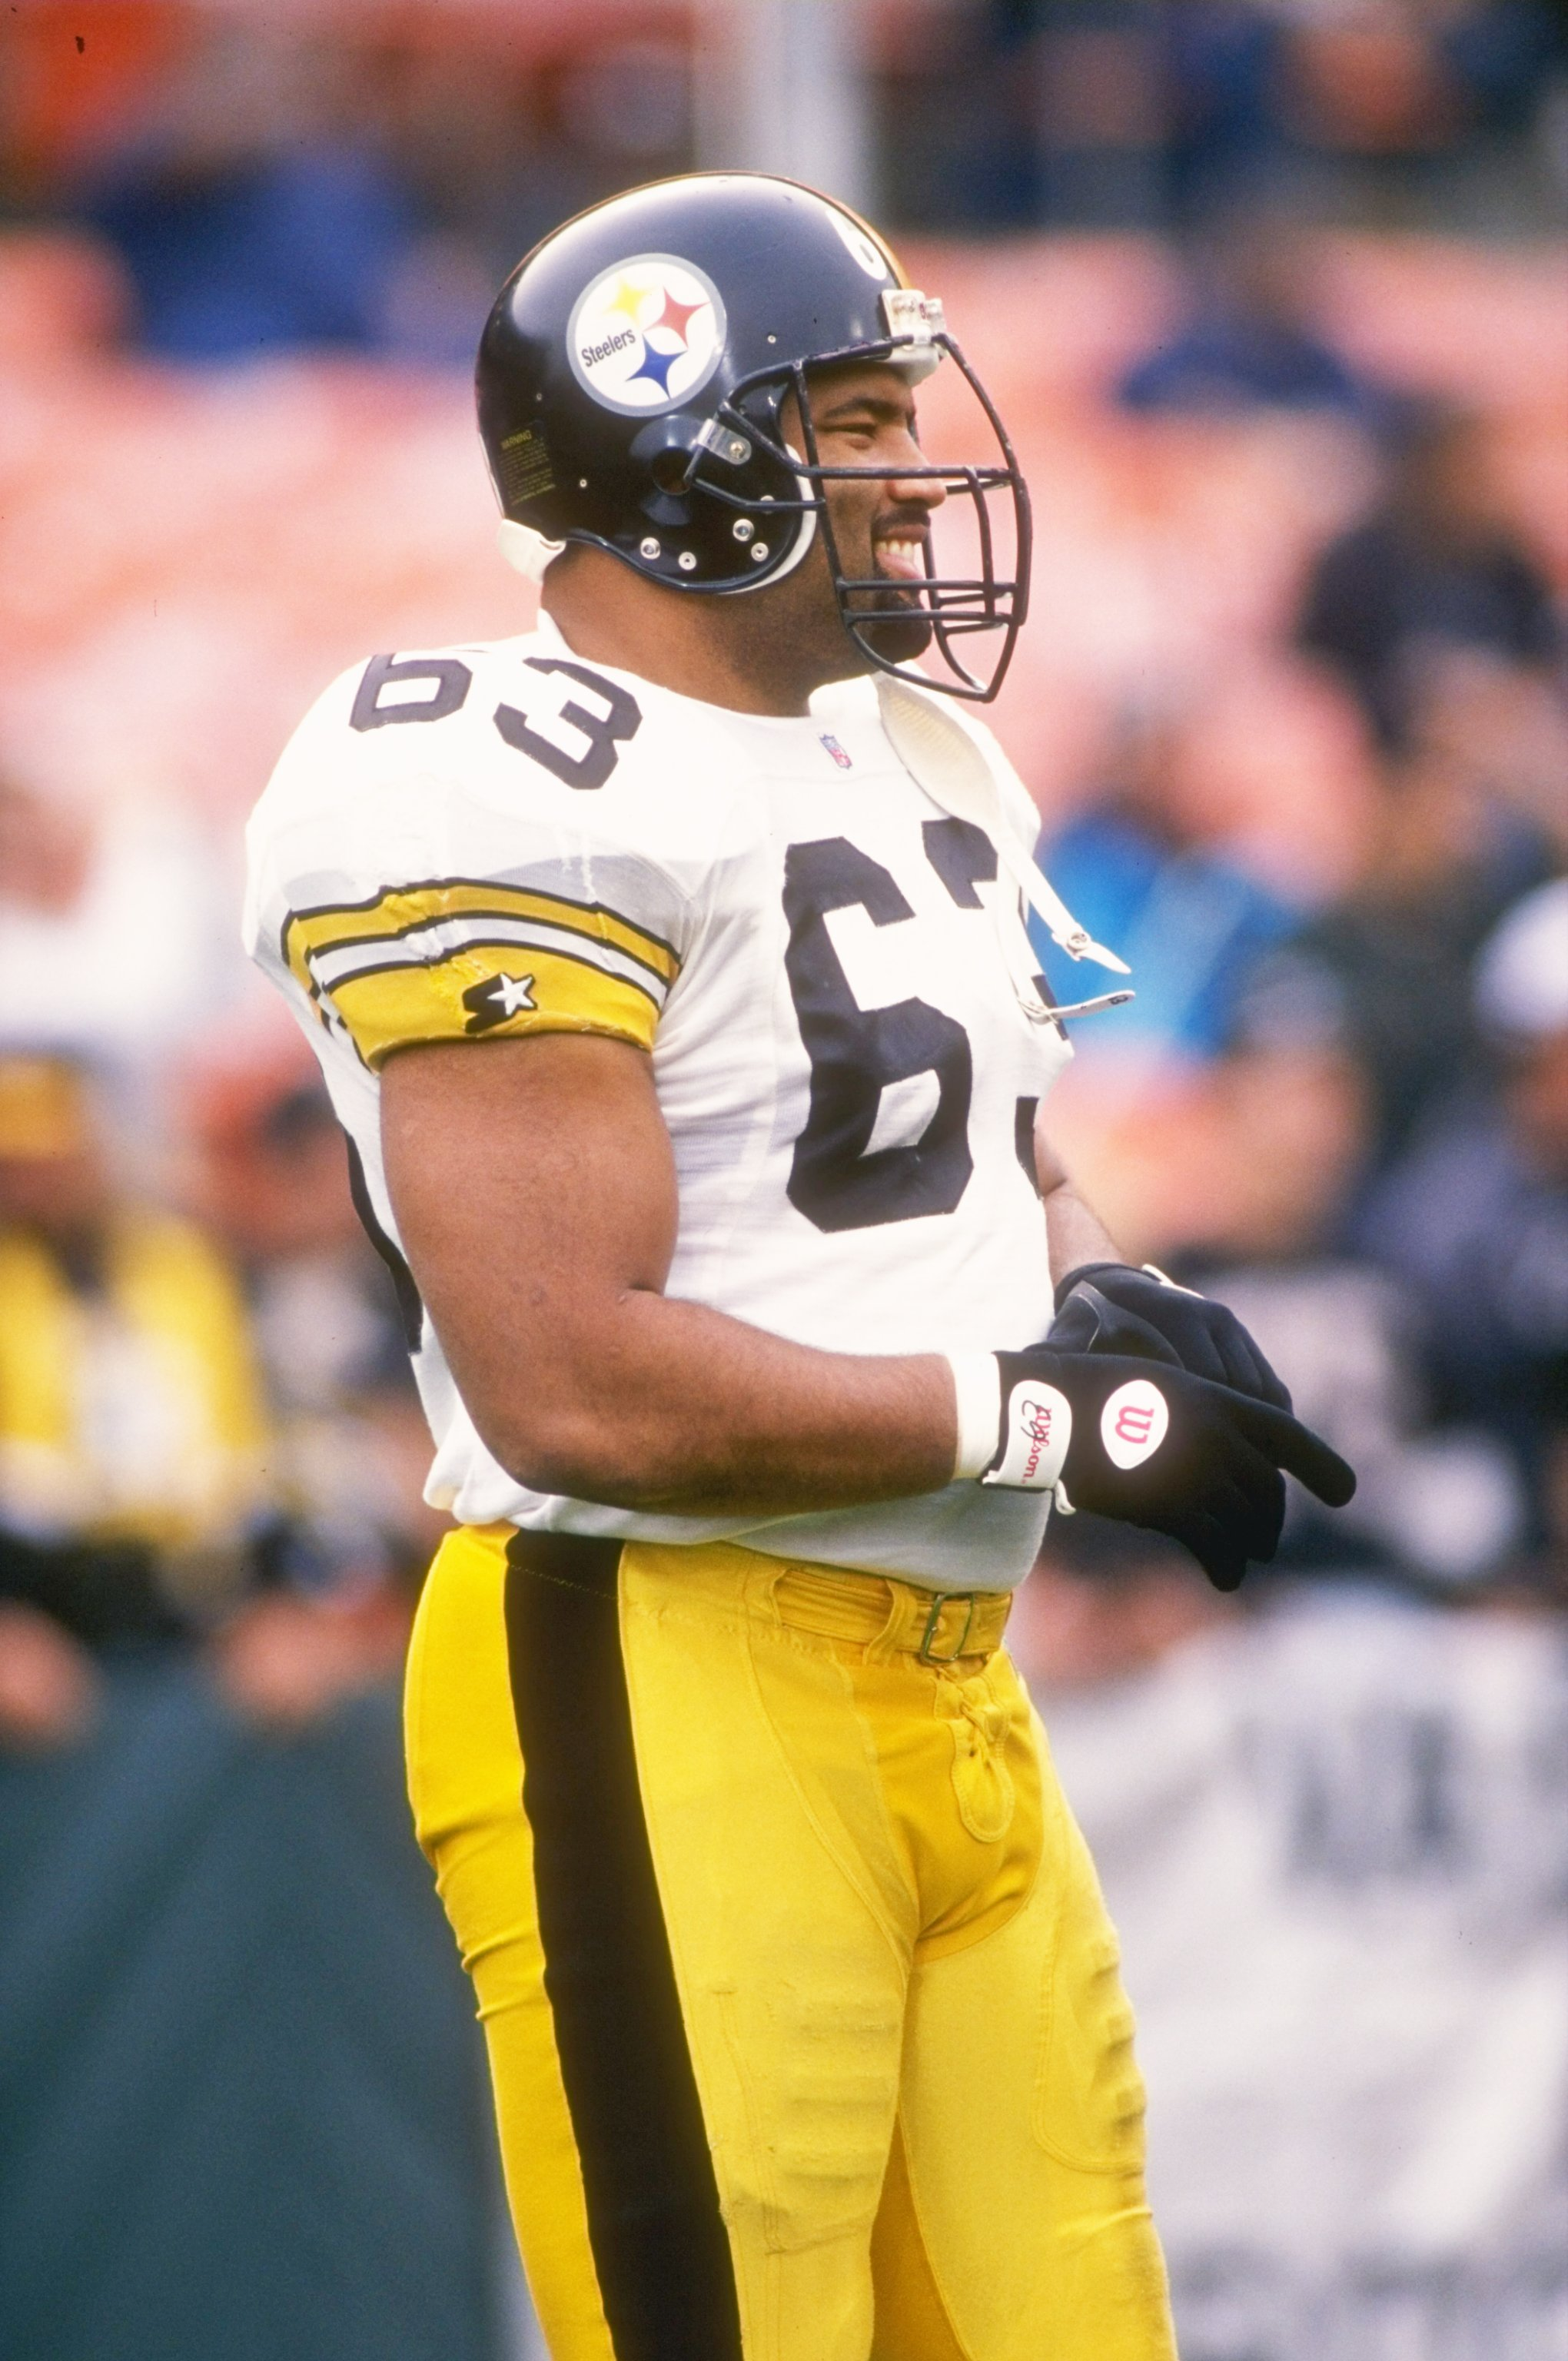 13aee3527 10 Dec 1995  Offensive lineman Dermontti Dawson of the Pittsburgh Steelers  in action on the